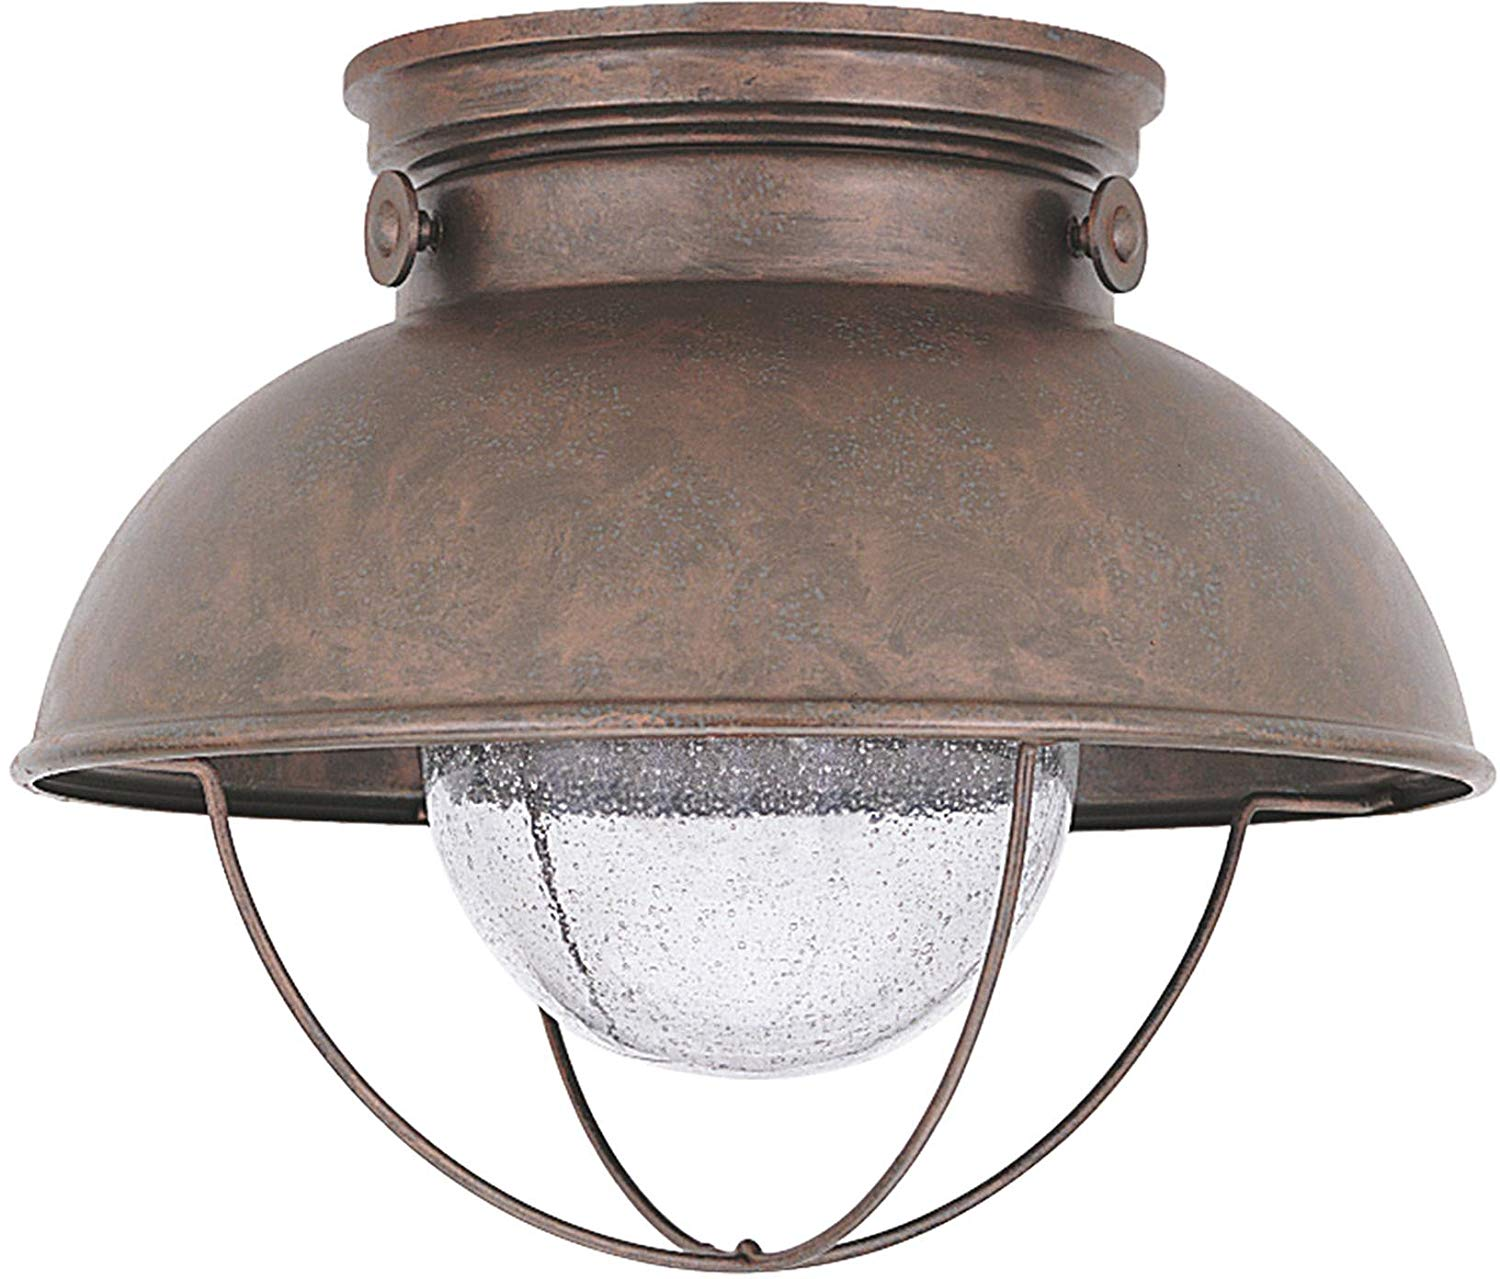 Sea Gull Lighting 886993S-44 Sebring Outdoor Flush Mount, 1-Light LED 14 Watts, Weathered Copper